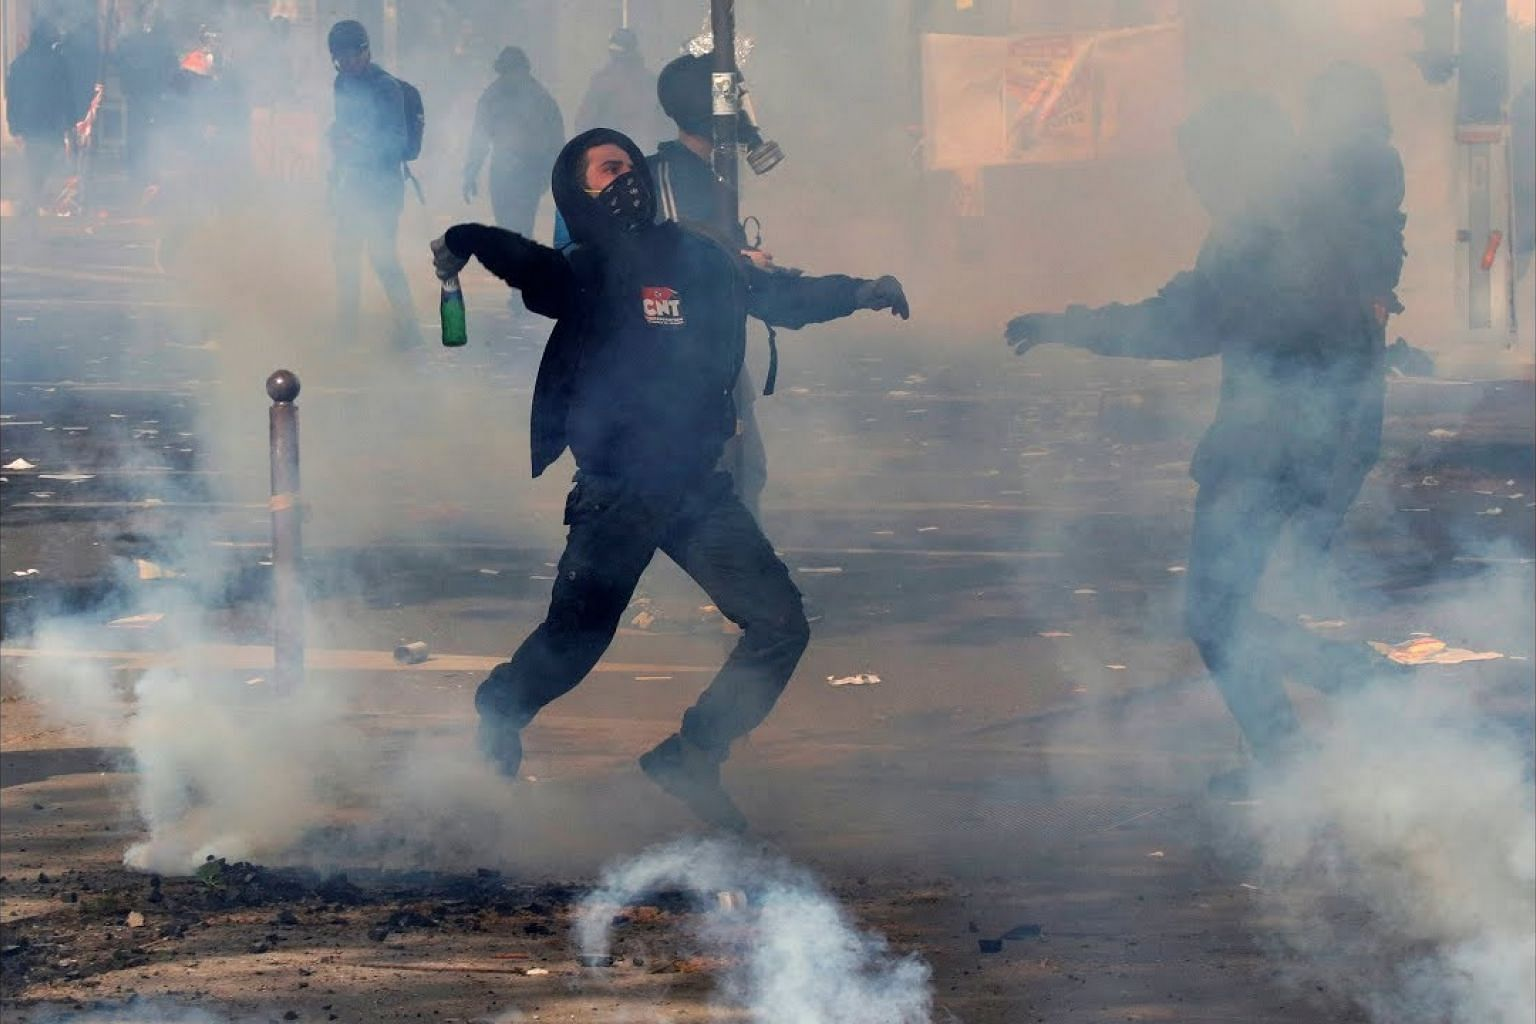 France: May Day tests Macron's reform mettle